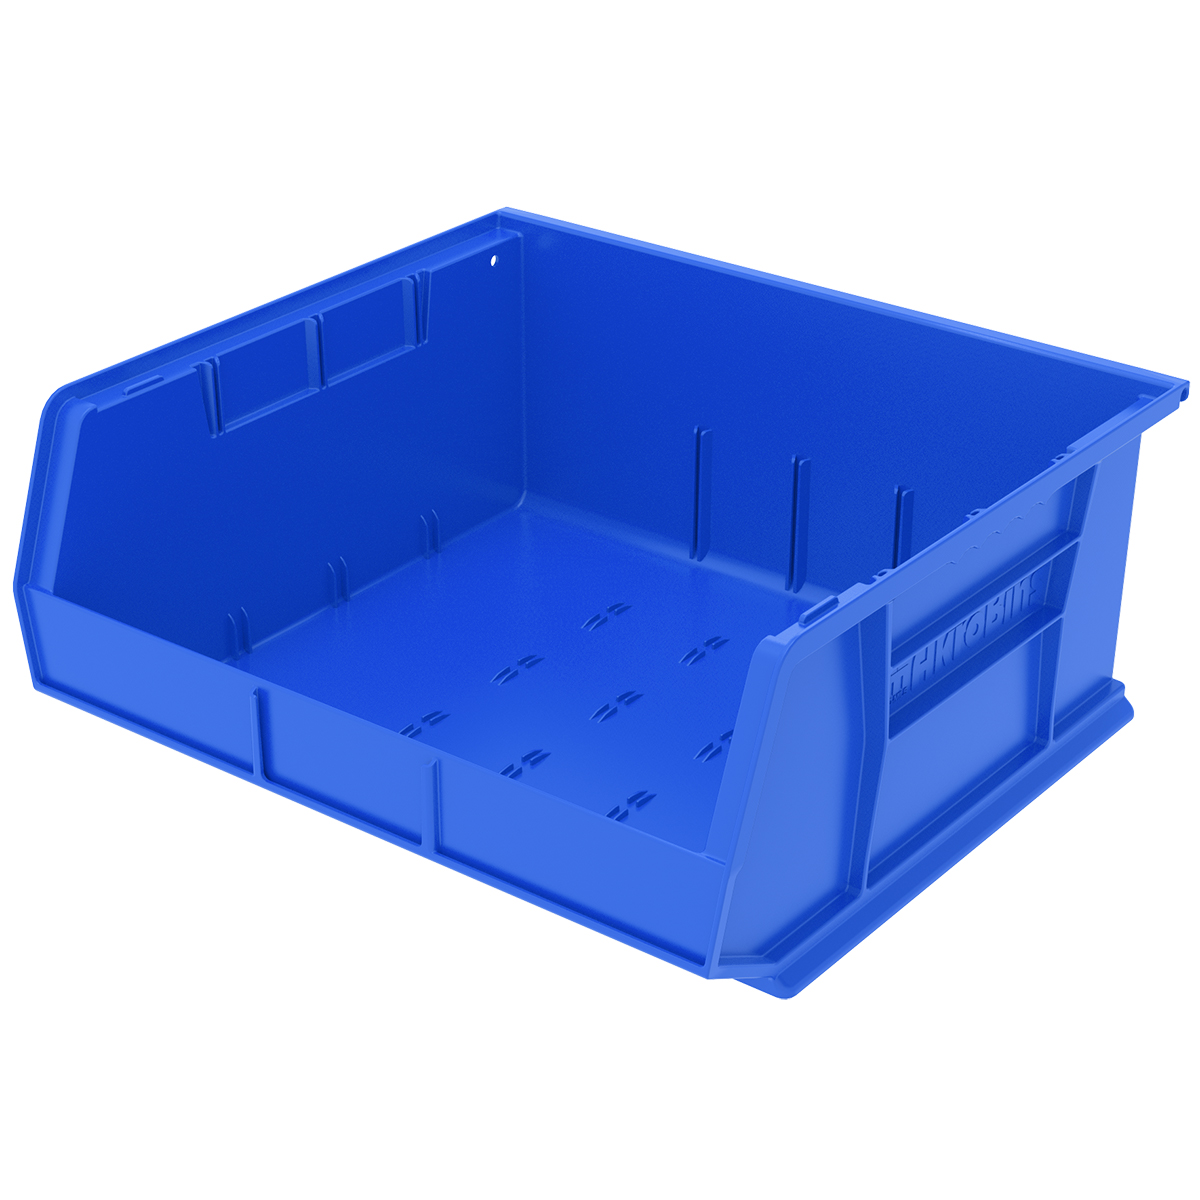 AkroBin 14-3/4 x 16-1/2 x 7, Blue (30250BLUE).  This item sold in carton quantities of 6.